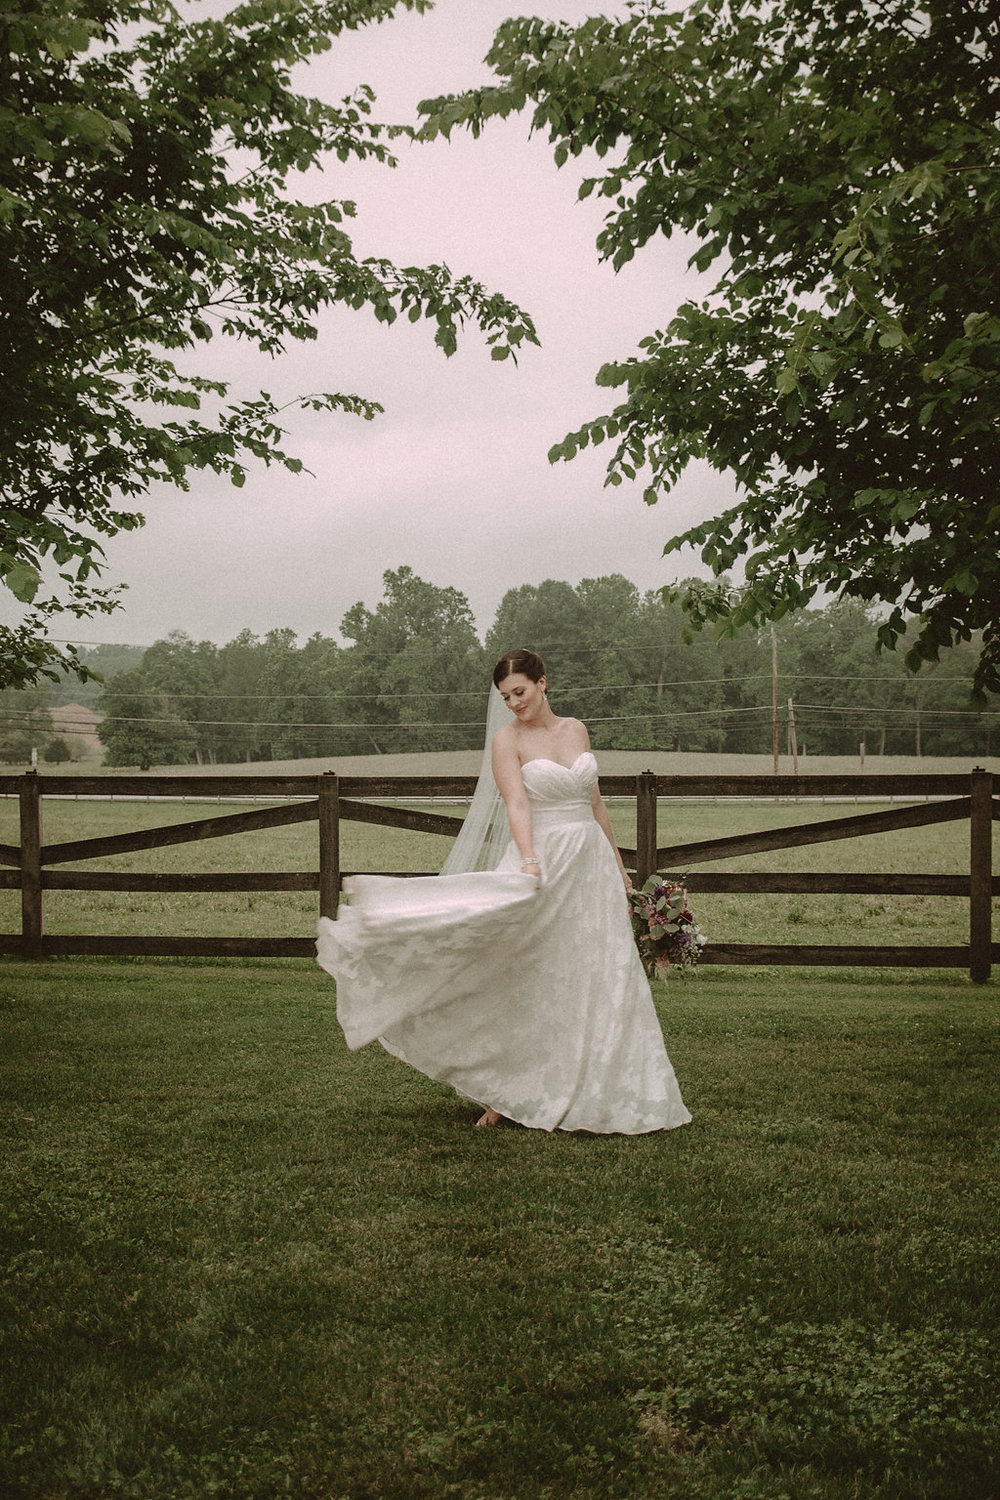 Bride posing in field